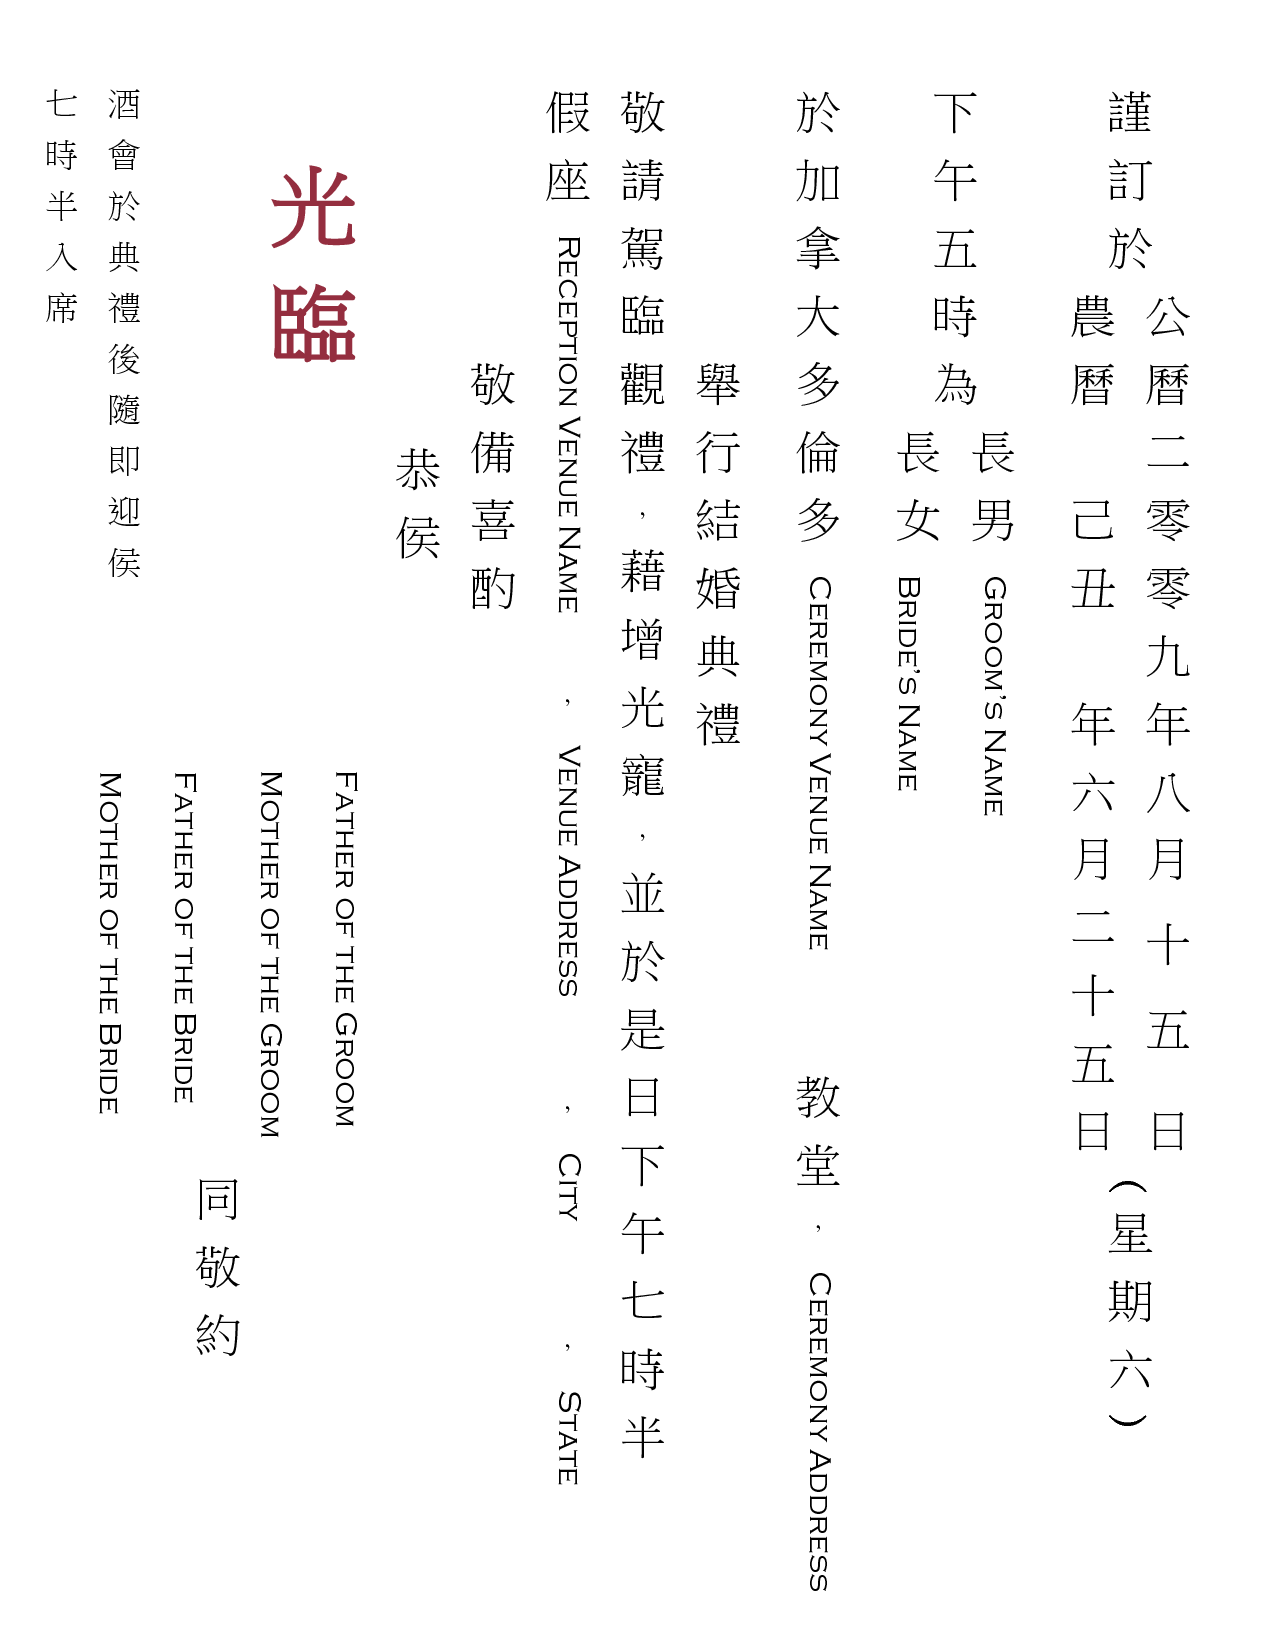 Chinese Invitation Template 1 | 中式 | Pinterest | Invitation ...